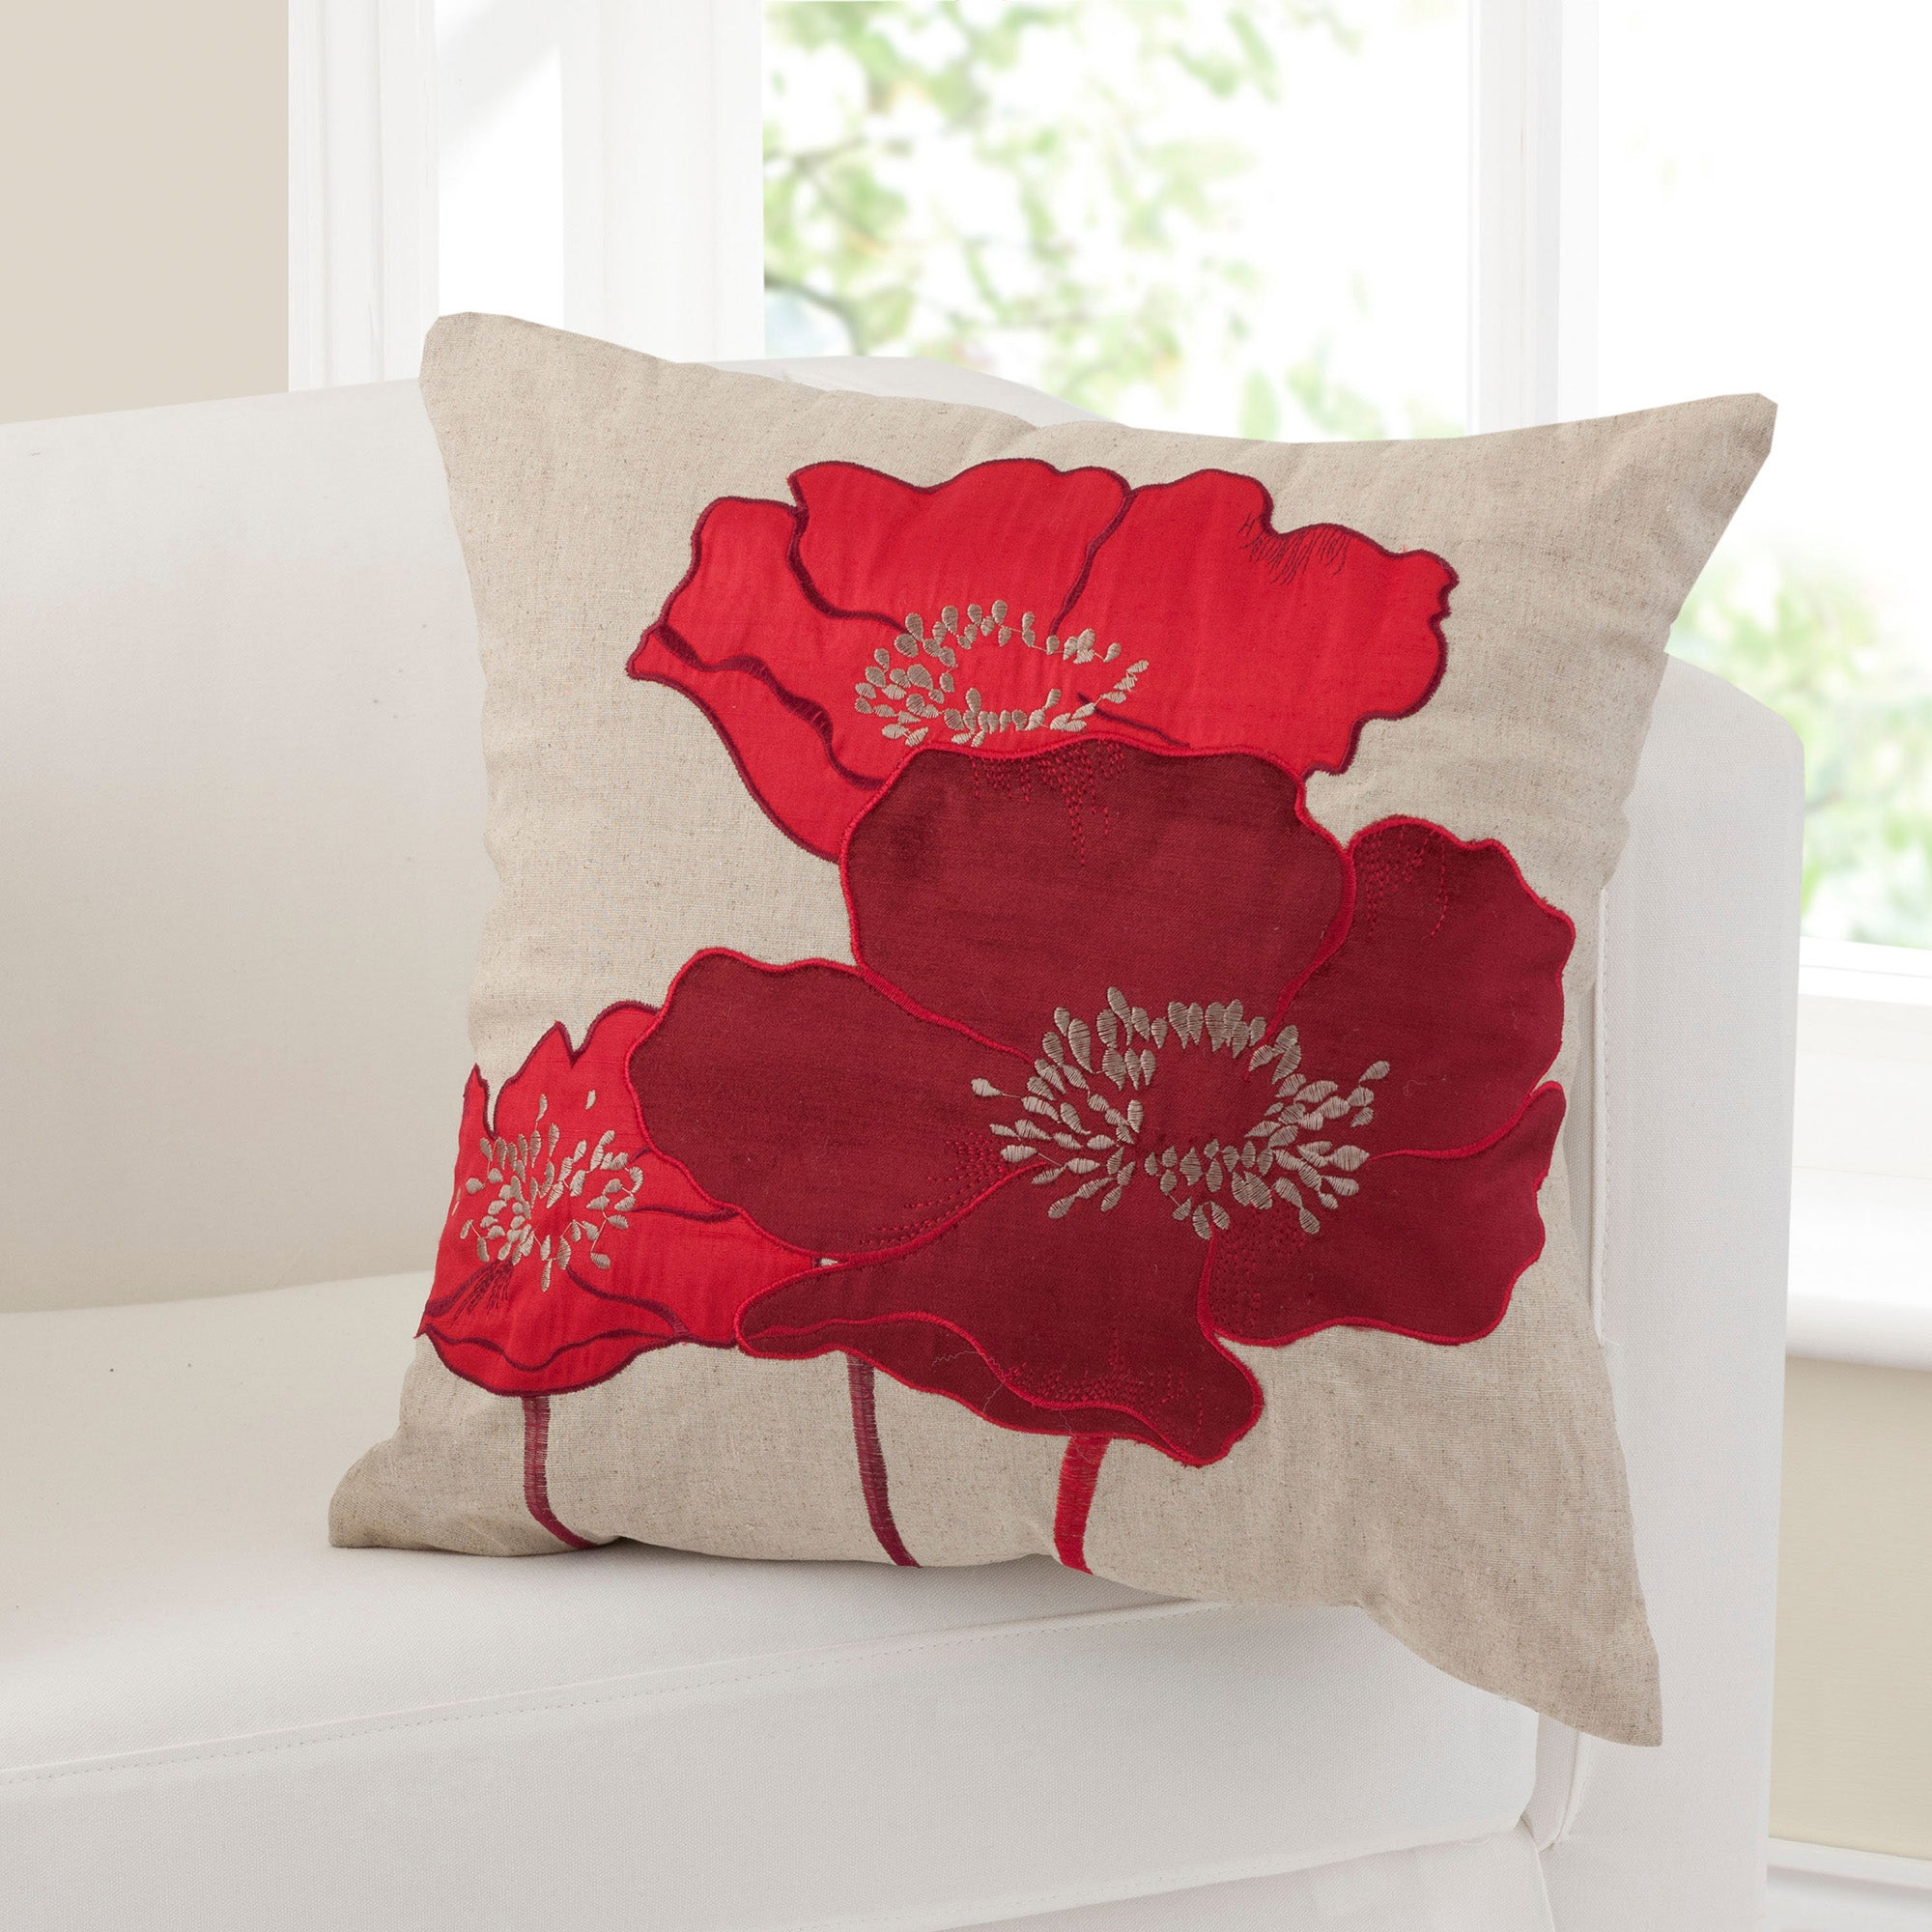 Red Opium Cushion